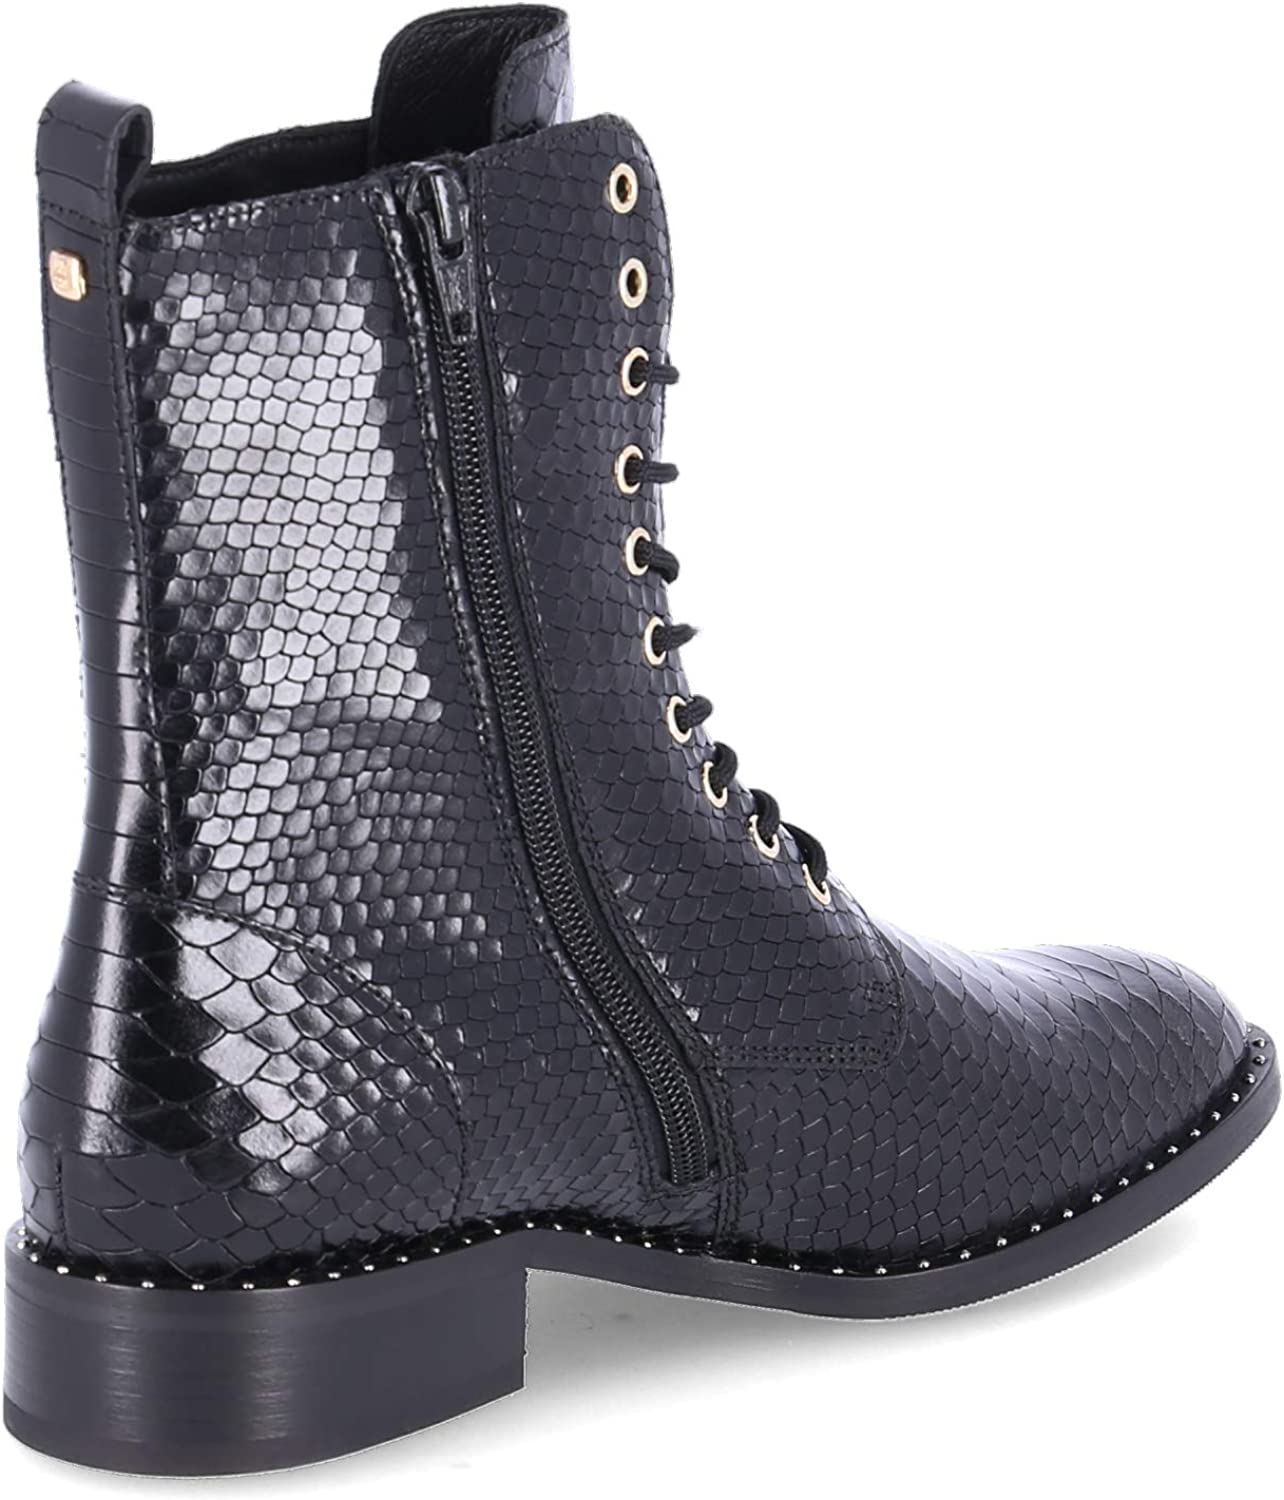 HÖGL Women's Soho Ankle Boots: Amazon